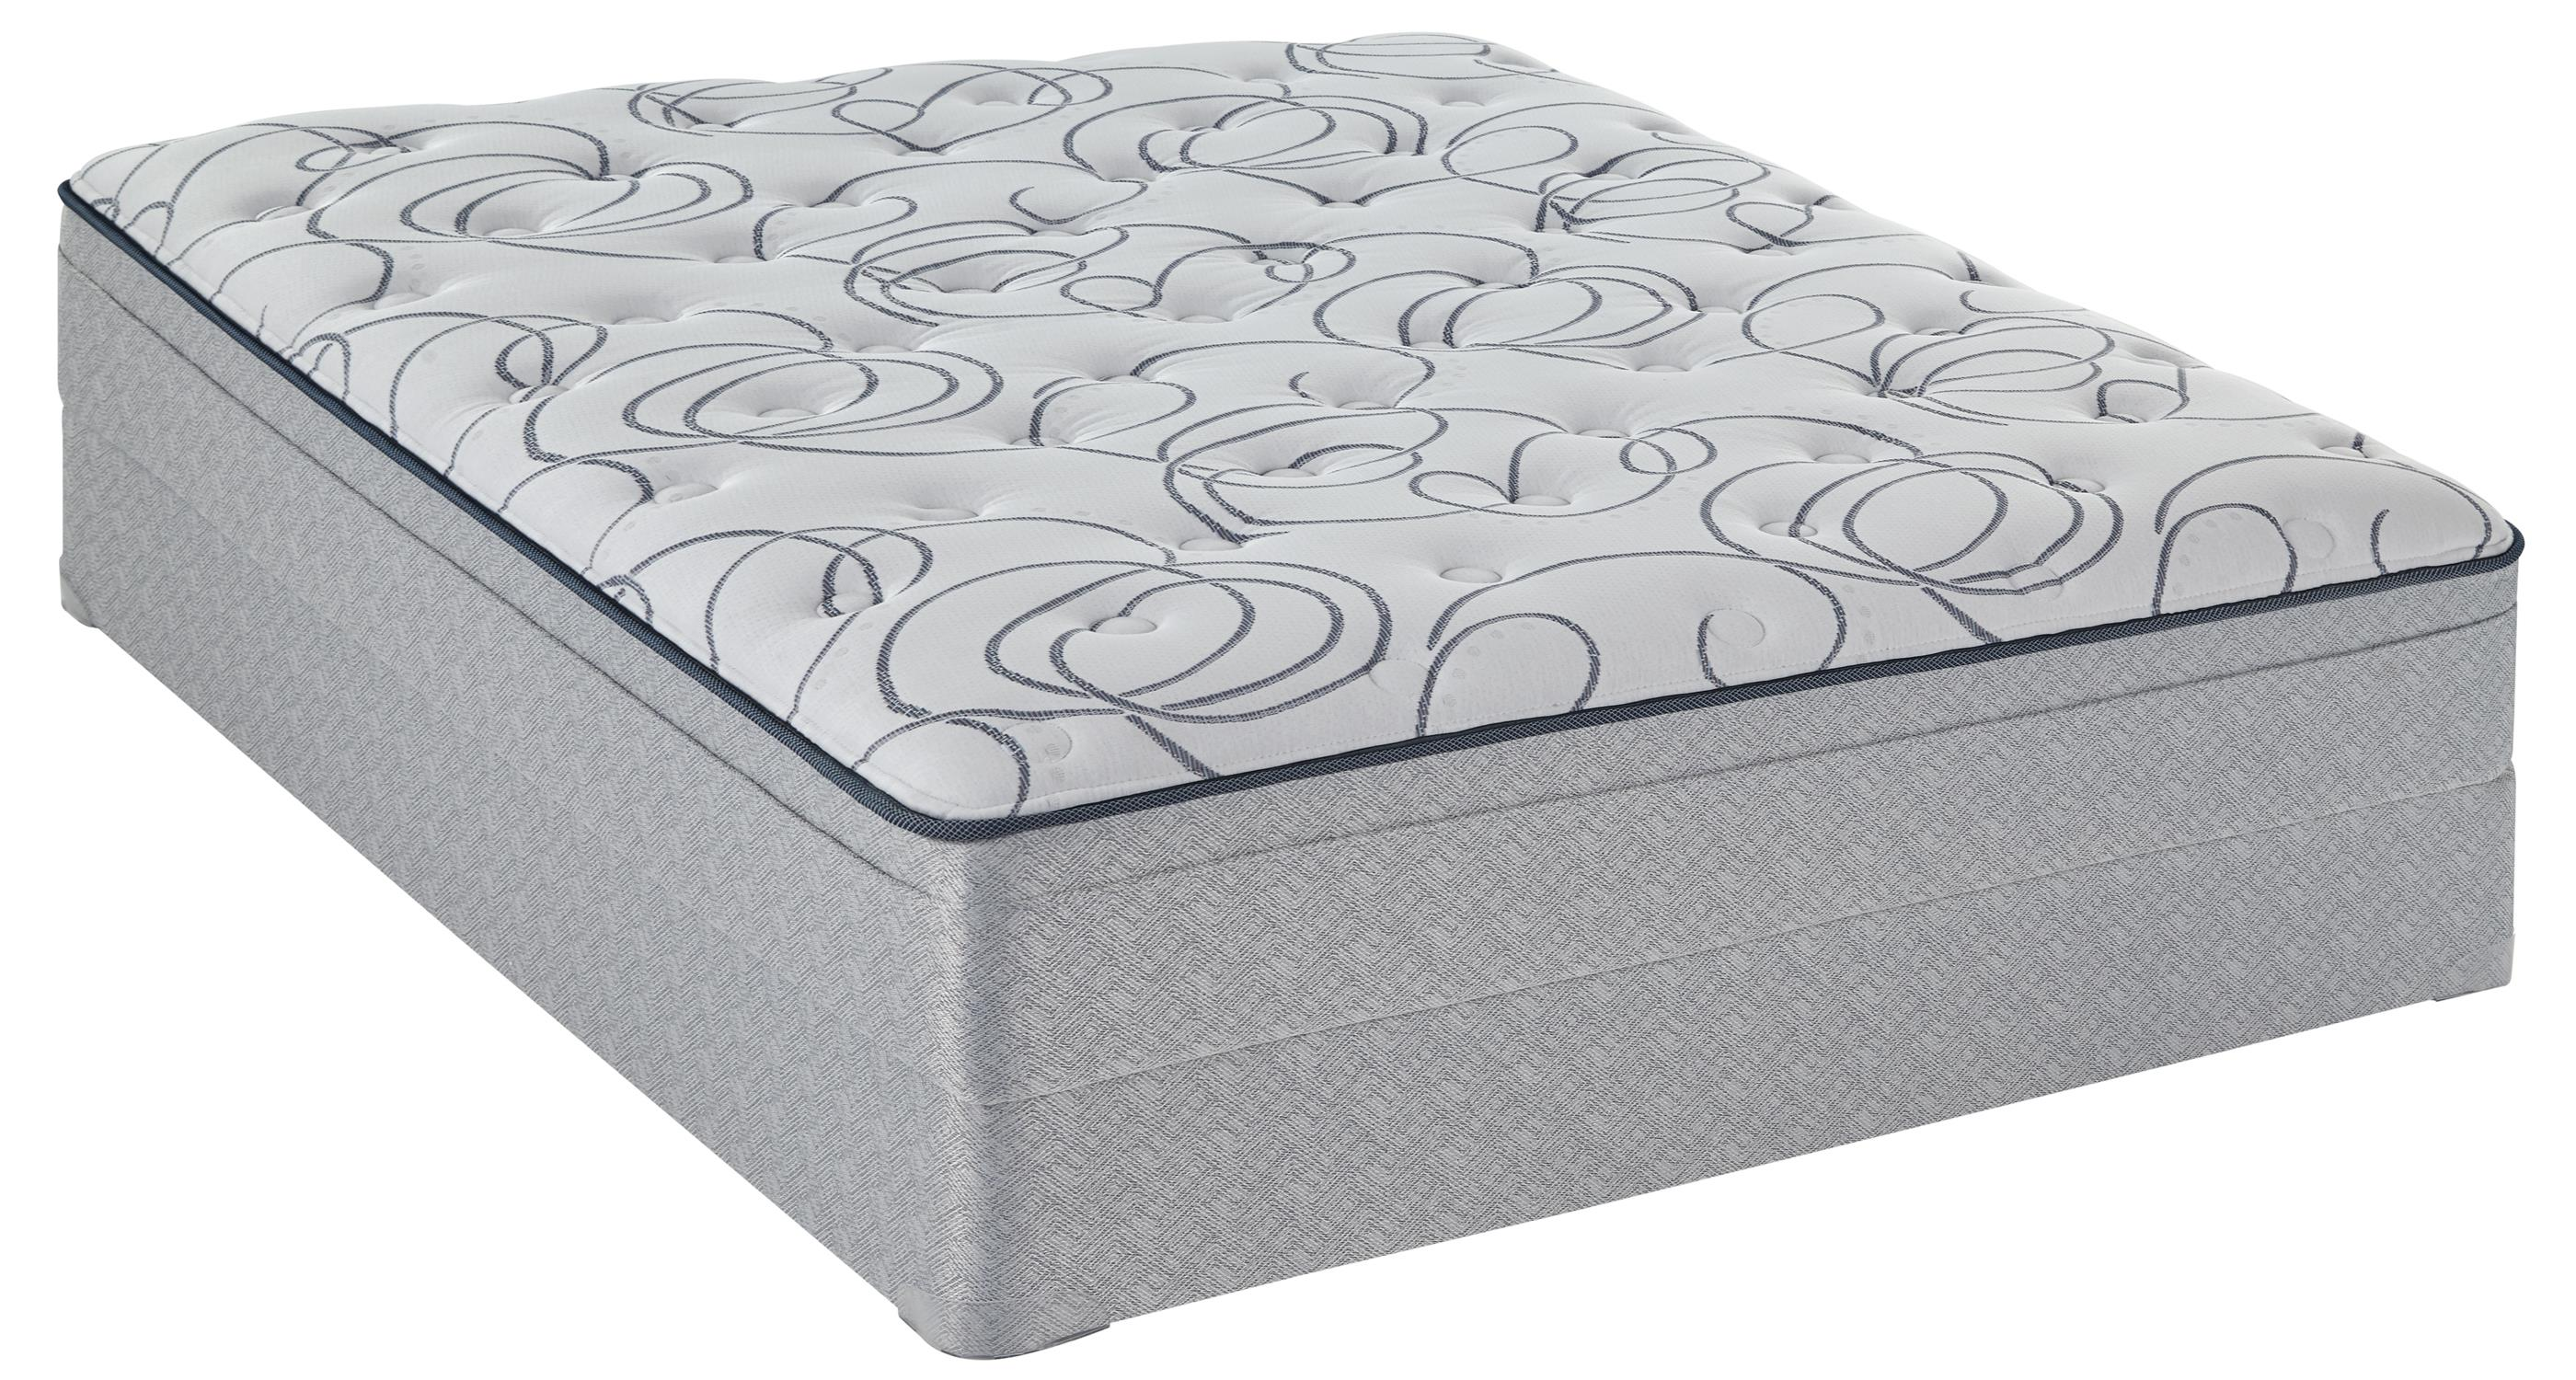 Sealy Sealy Watsonia Queen Plush Euro Top Mattress and